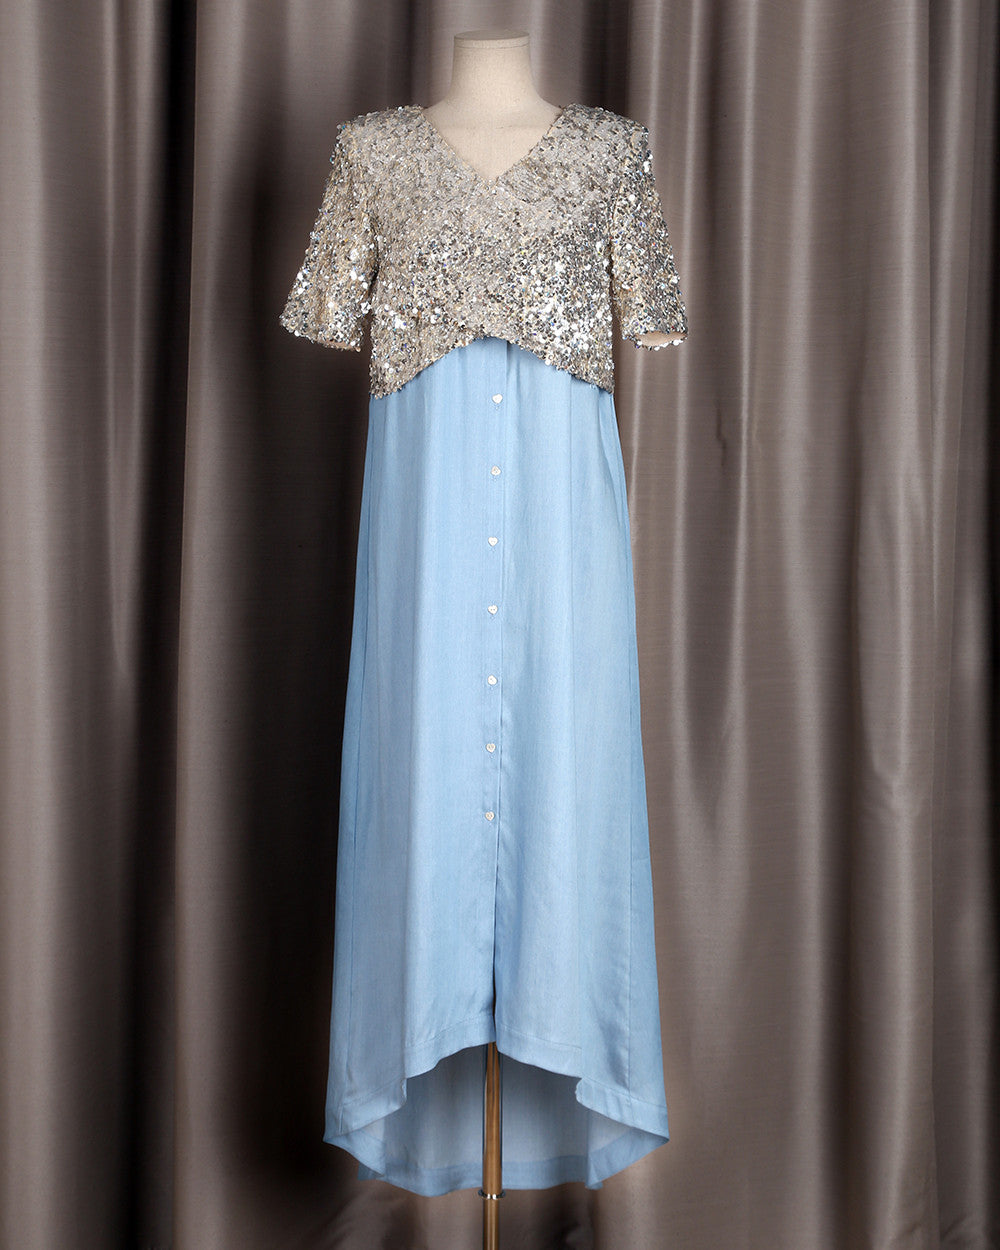 JAMIE sequins top long shirt dress